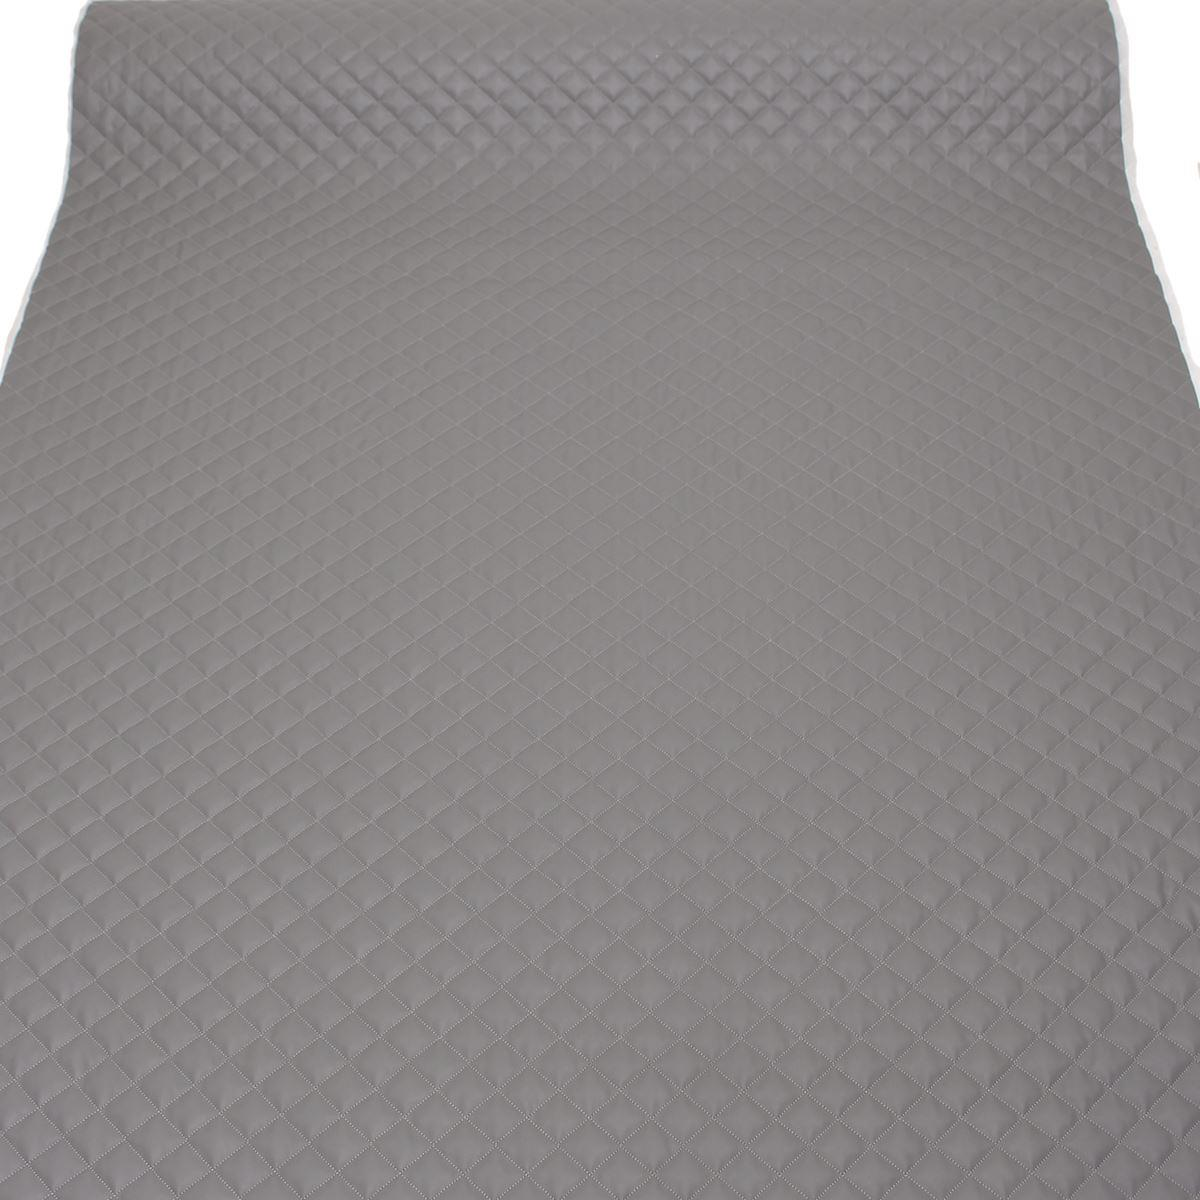 thumbnail 28 - Quilted leather Diamond Padded Cushion Faux Leather Interior Upholstery Fabric